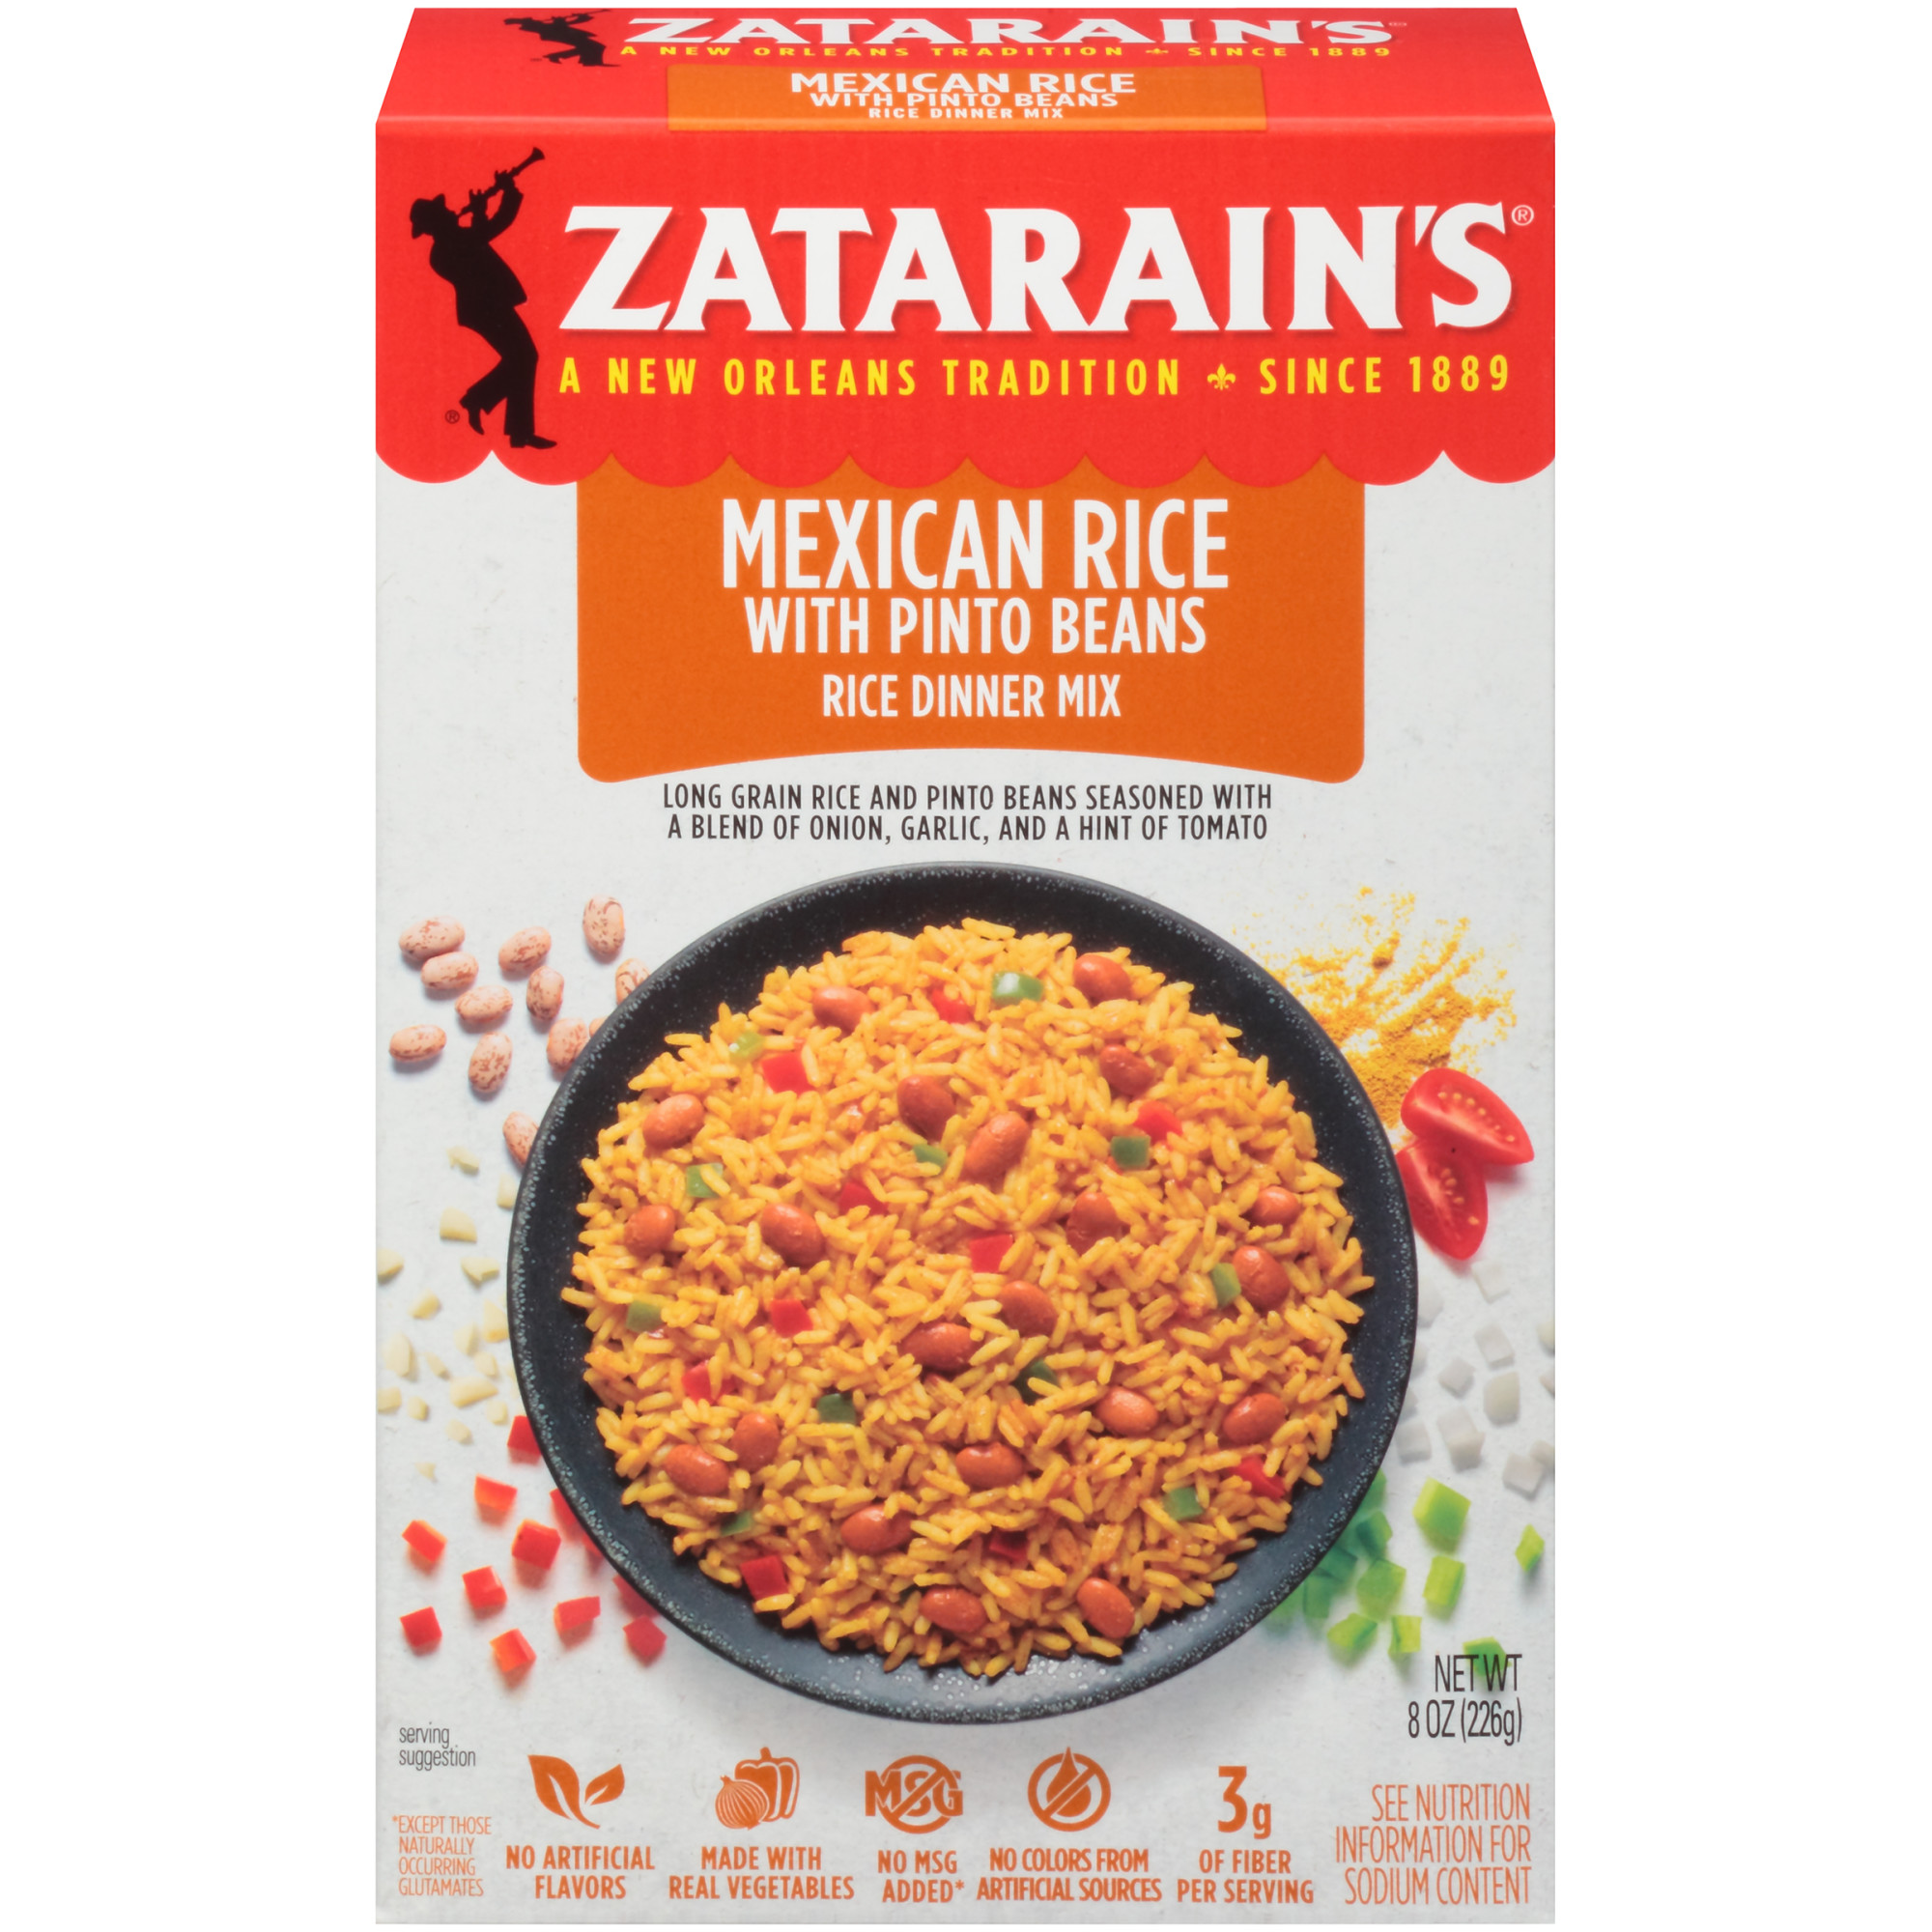 Zatarain's Mexican Rice with Whole Pinto Beans Rice Dinner Mix, 8 oz